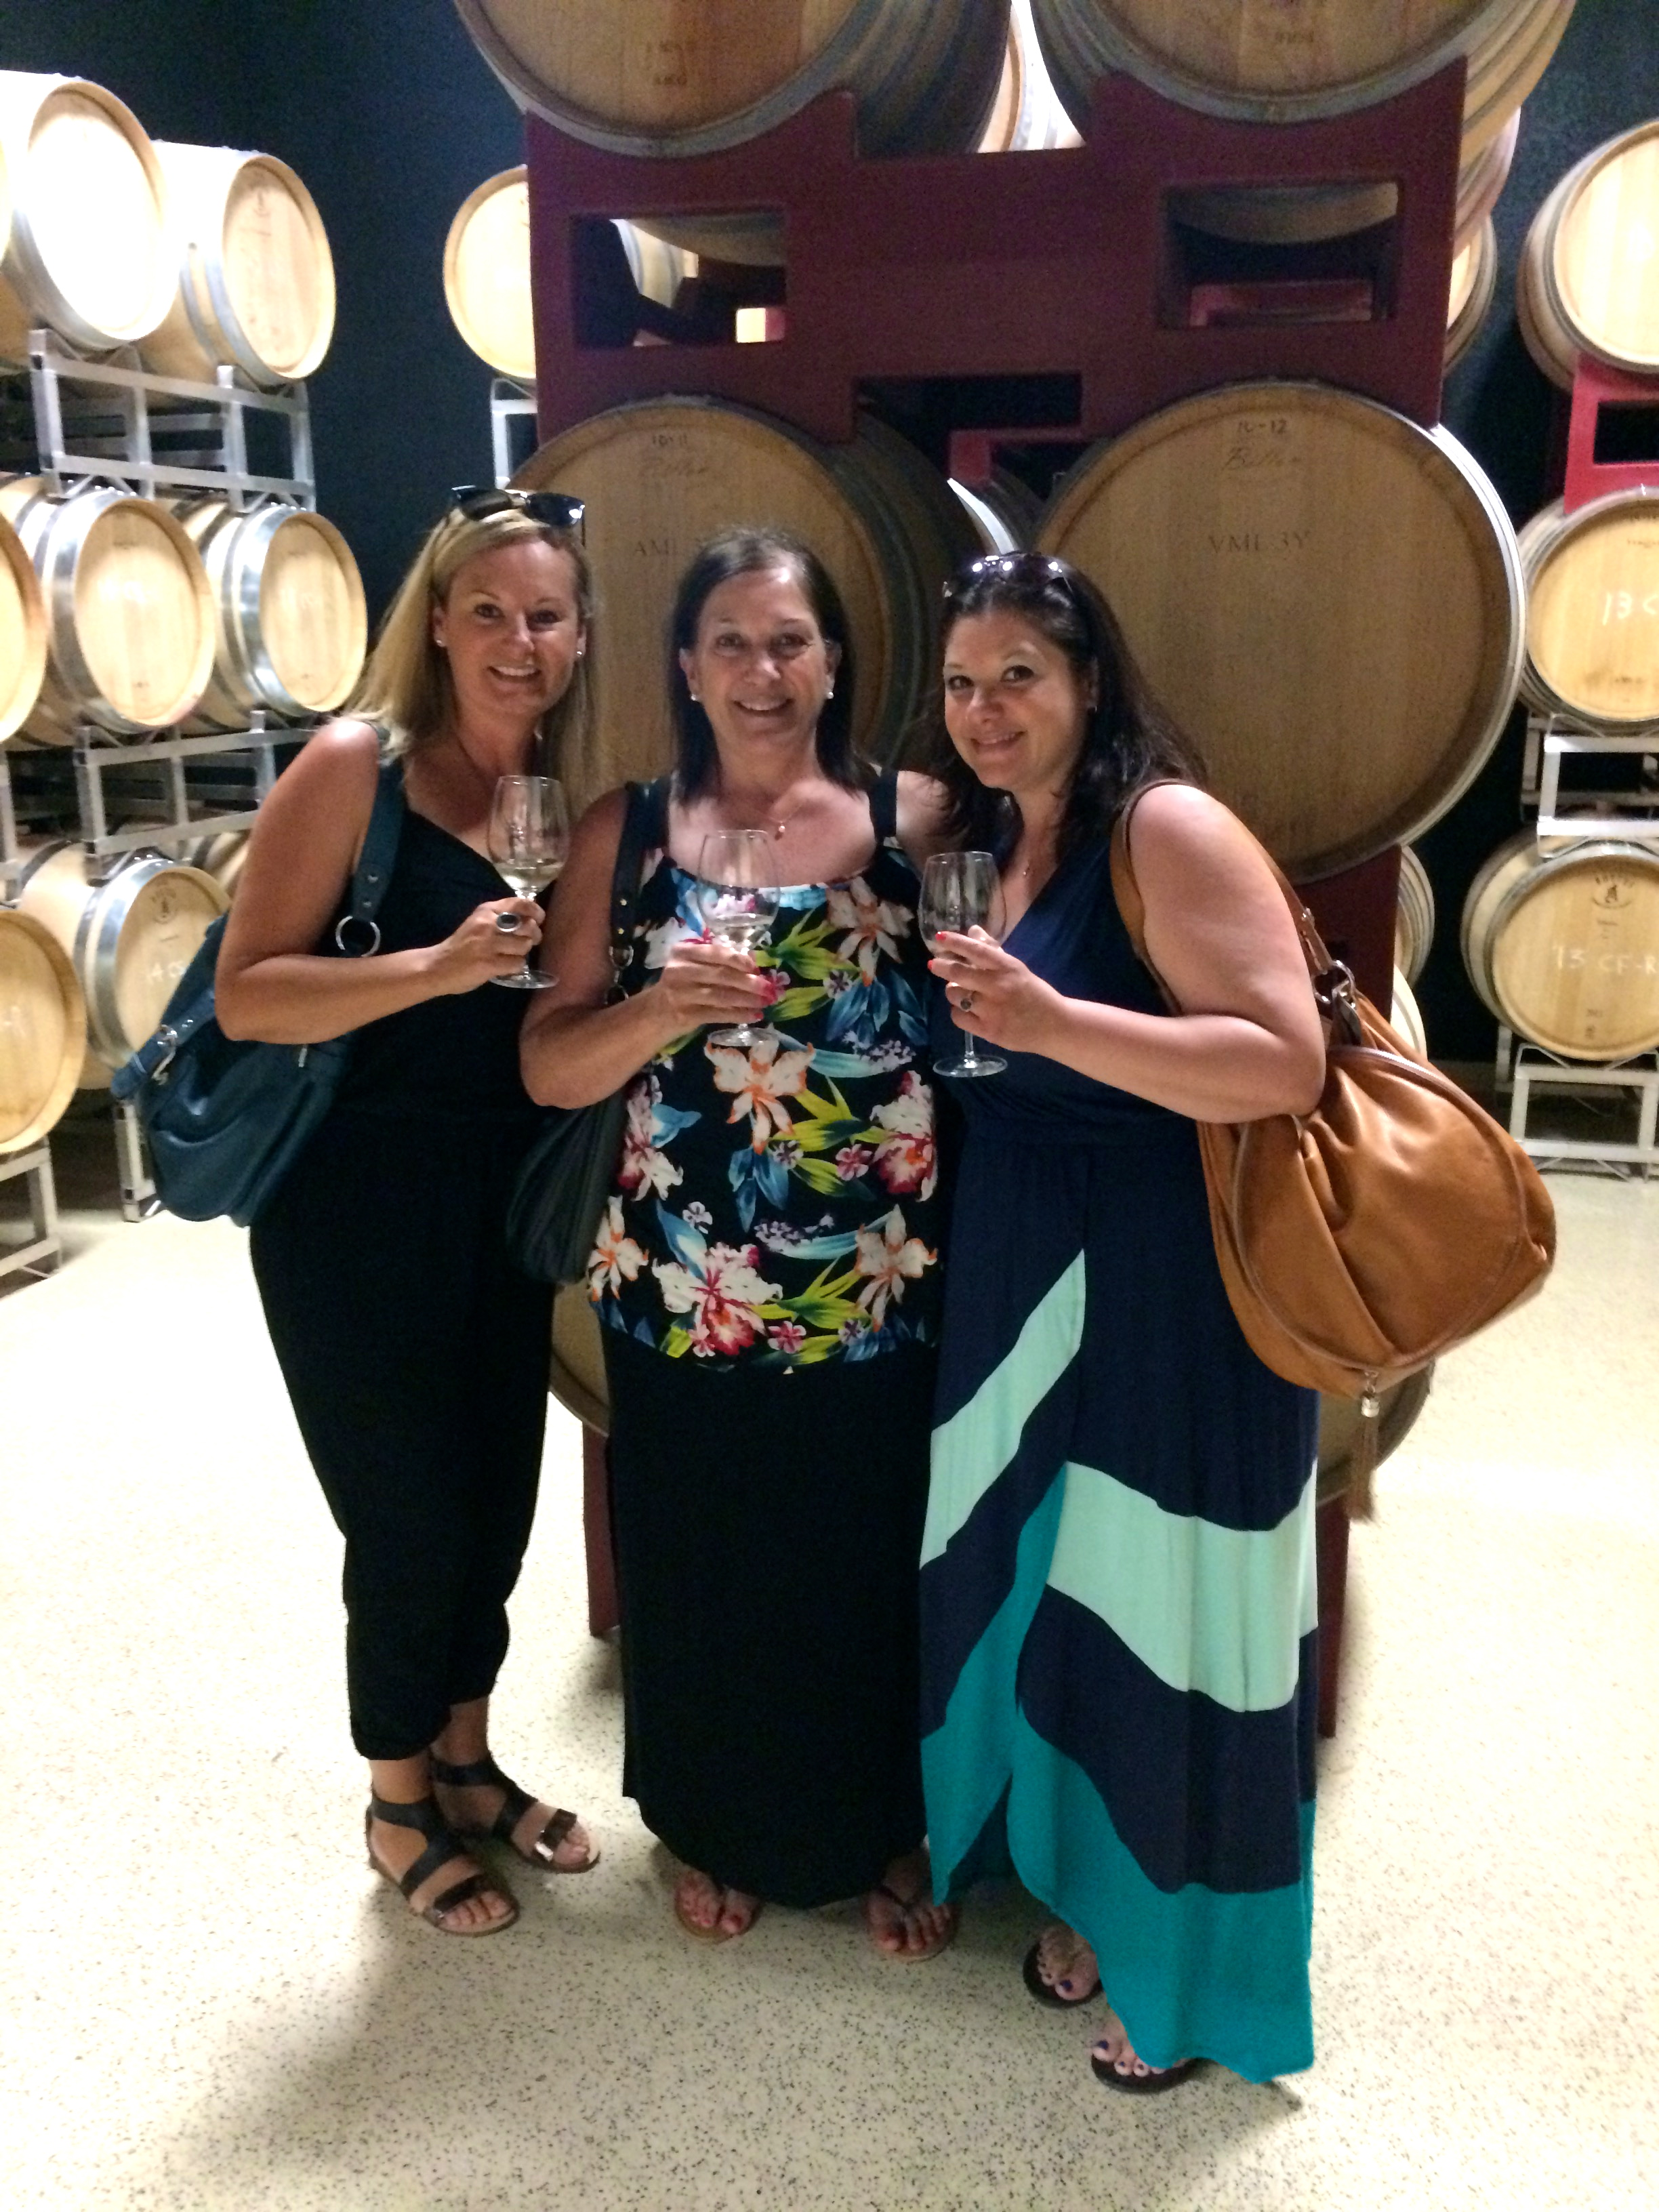 Toasting Mom in the barrel cellar at Hinterbrook Winery.